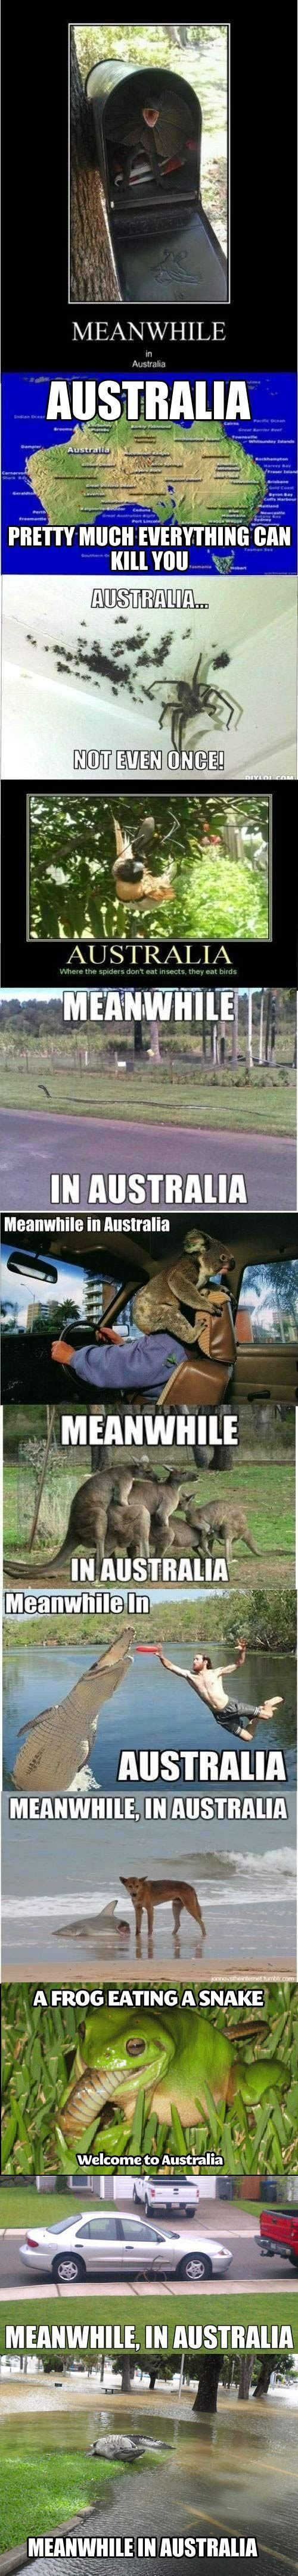 Meanwhile in Australia compilation « 9greg I know Australia is amazing